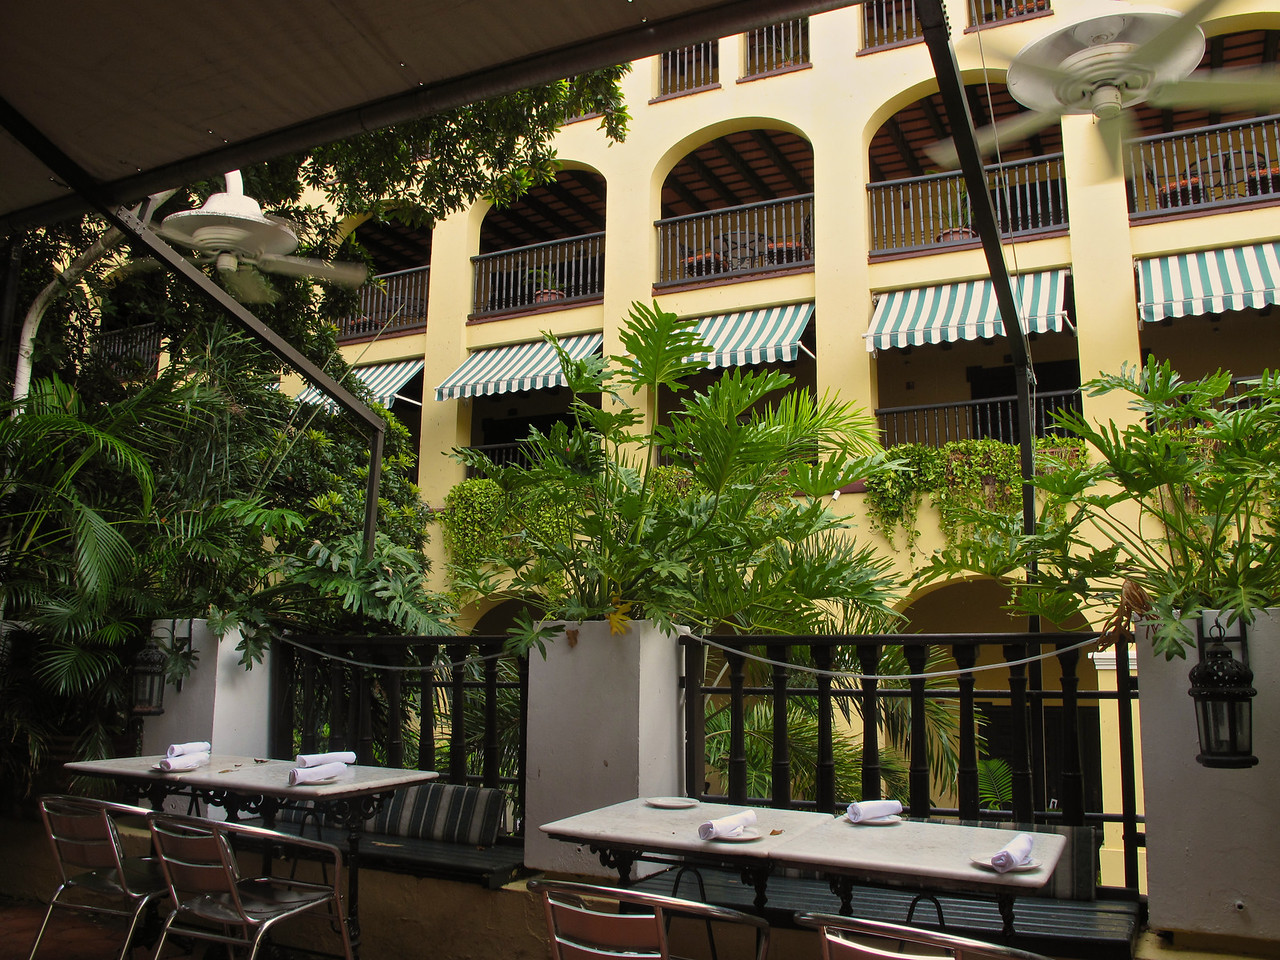 El Picoteo is an outdoor patio restaurant overlooking the hotel courtyard.